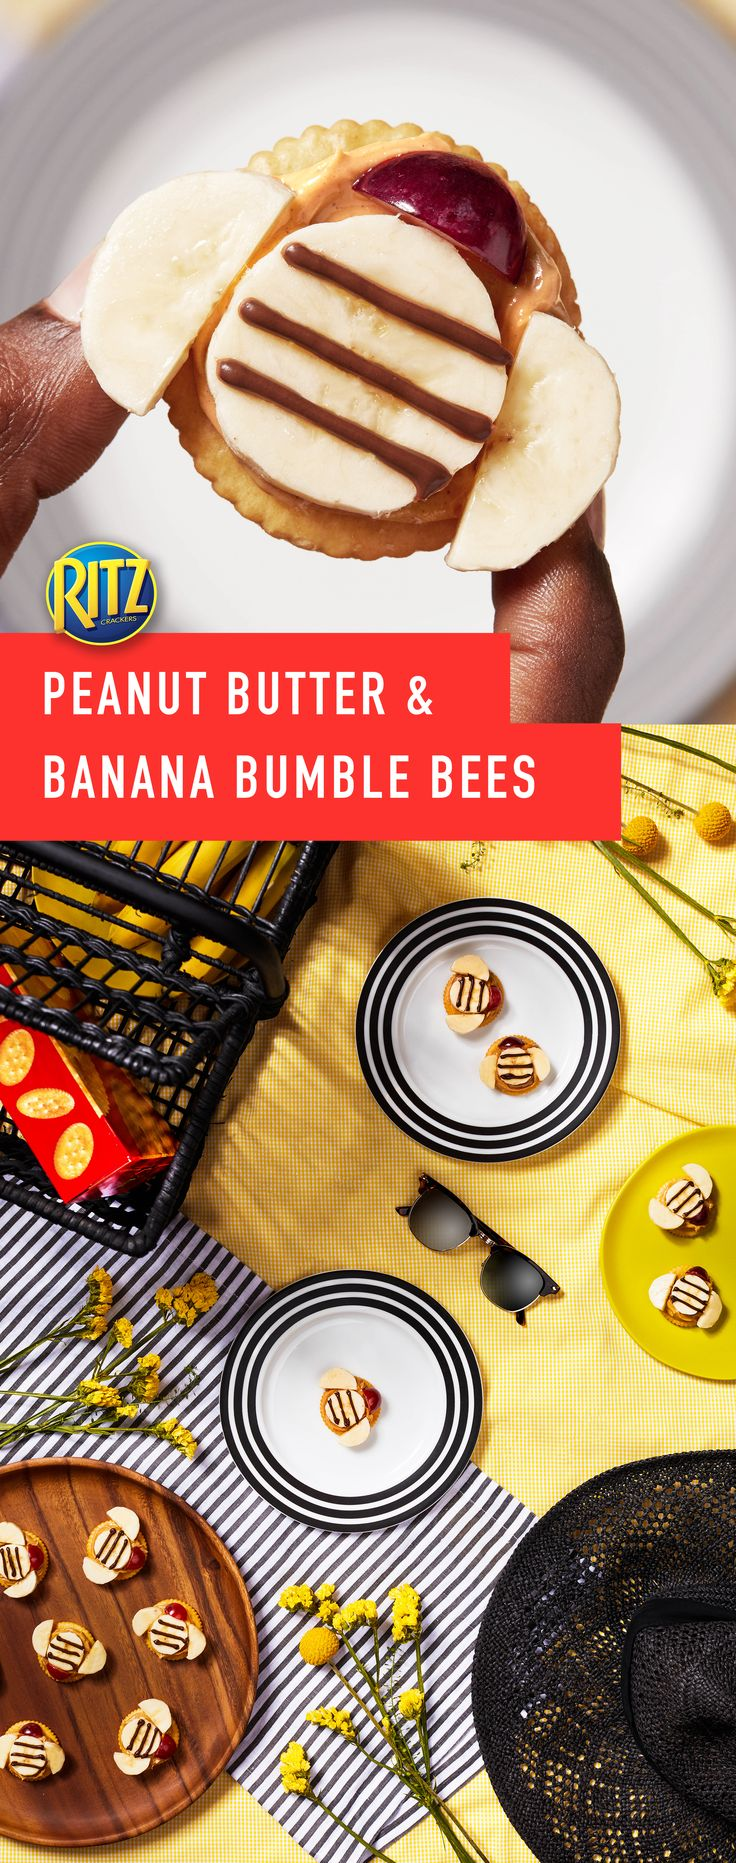 Spring is in the air and that means it's time for family picnics! These Peanut Butter and Banana Bumble Bees will make your family picnic moments special! To make: Spread peanut butter on to crackers, top with 1 banana slice. Spoon chocolate spread into resealable plastic bag, cut hole in bottom corner of bag. Use to pipe horizontal lines onto banana slices for bee body. Cut remaining banana slices on crackers for wings, grapes for head. You've got the stuff to make life rich.